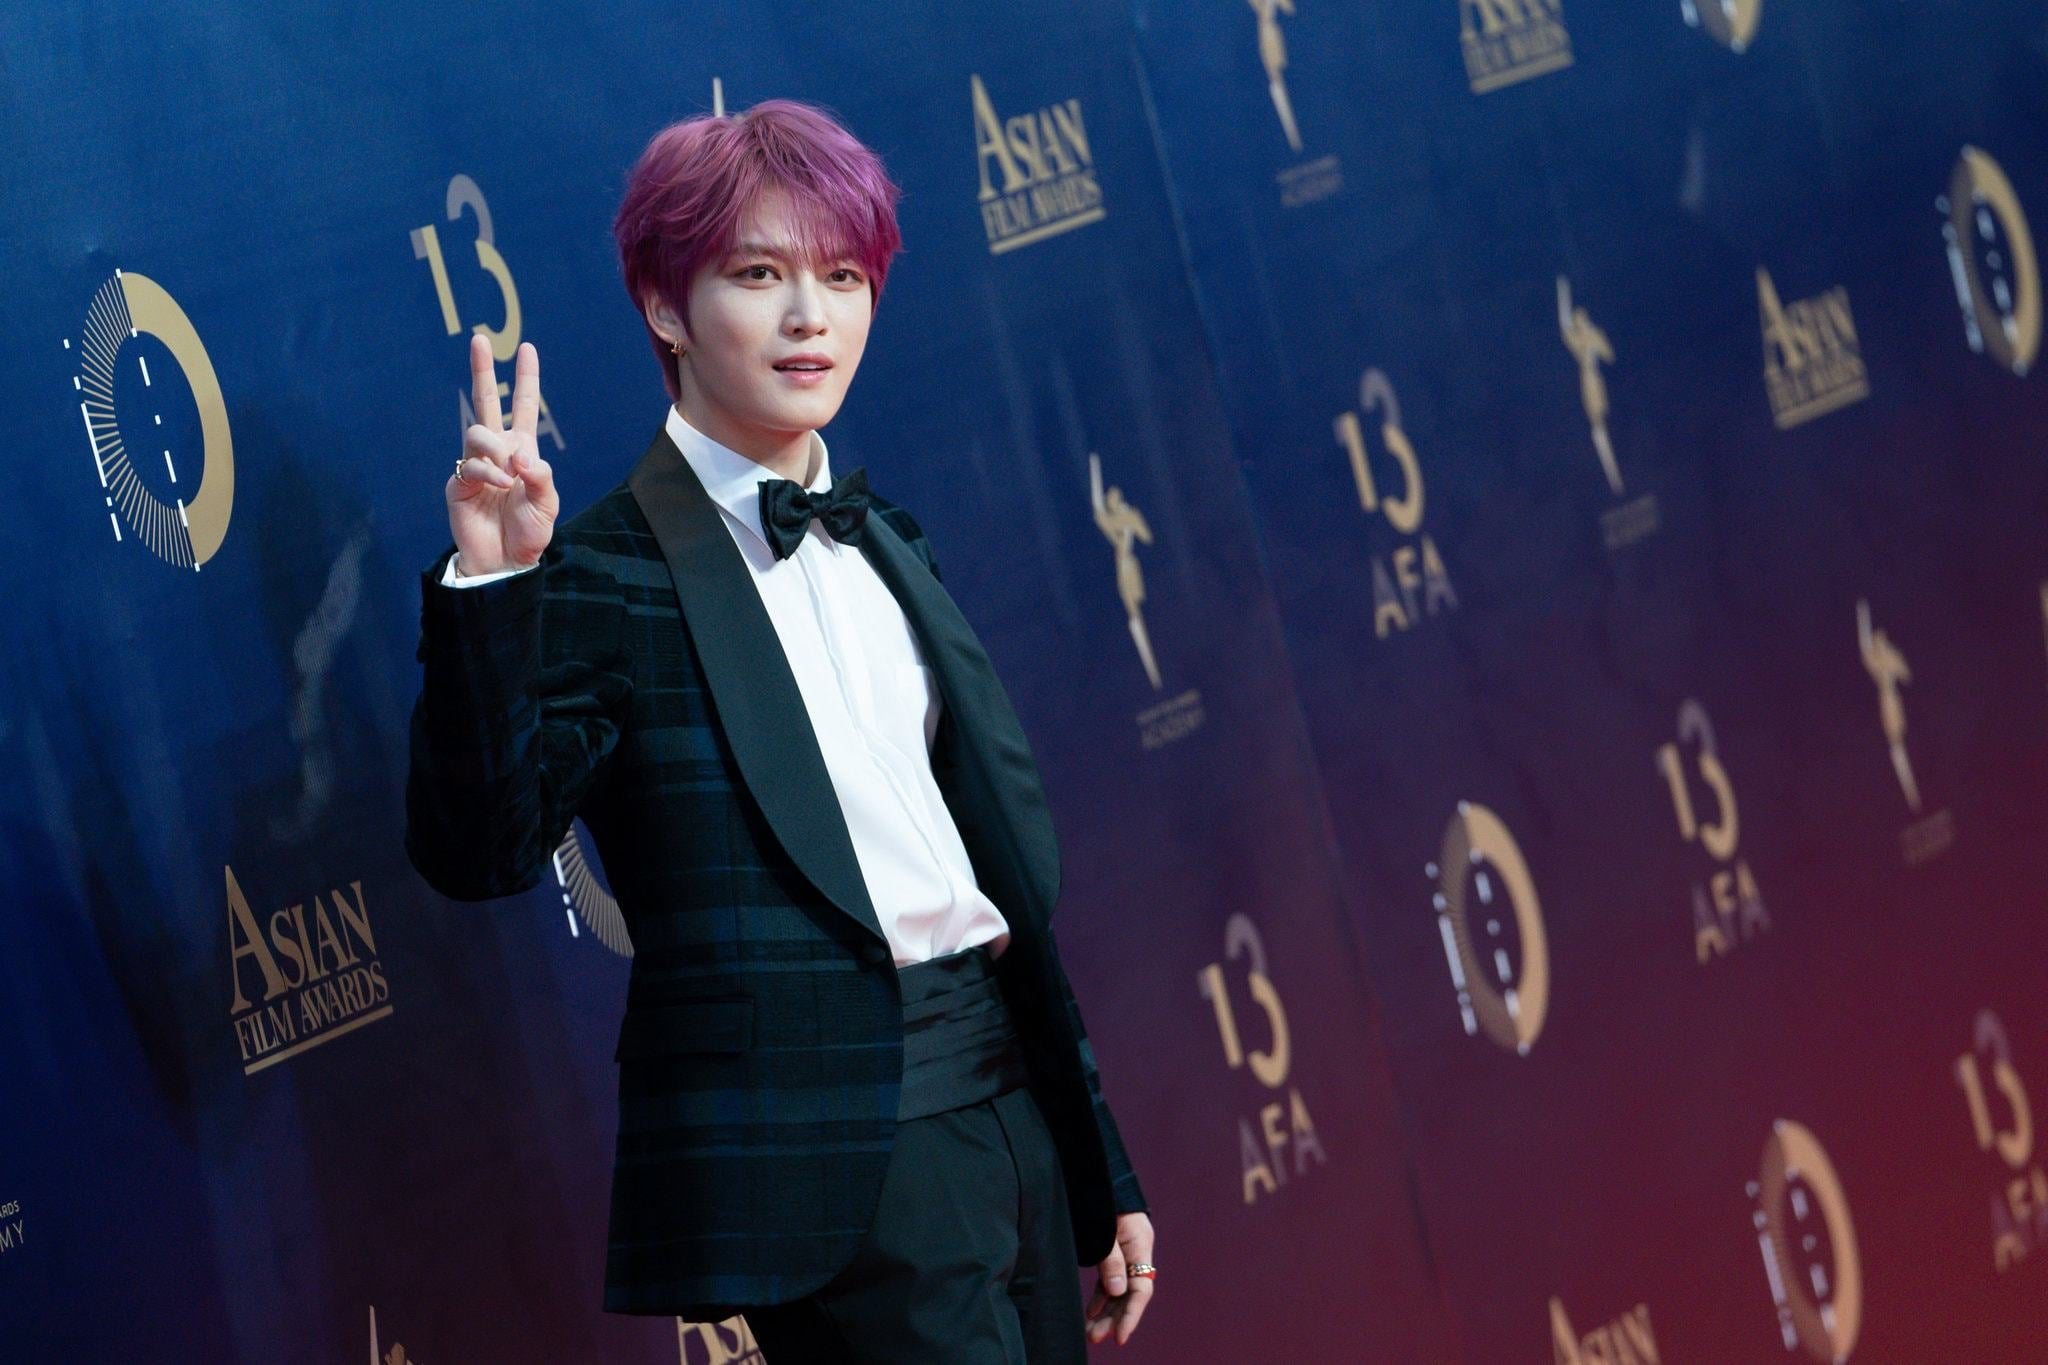 The singer-actor known as Jaejoong deactivated his Instagram account after falsely claiming to have the coronavirus — Anthony Kwan/Getty Images